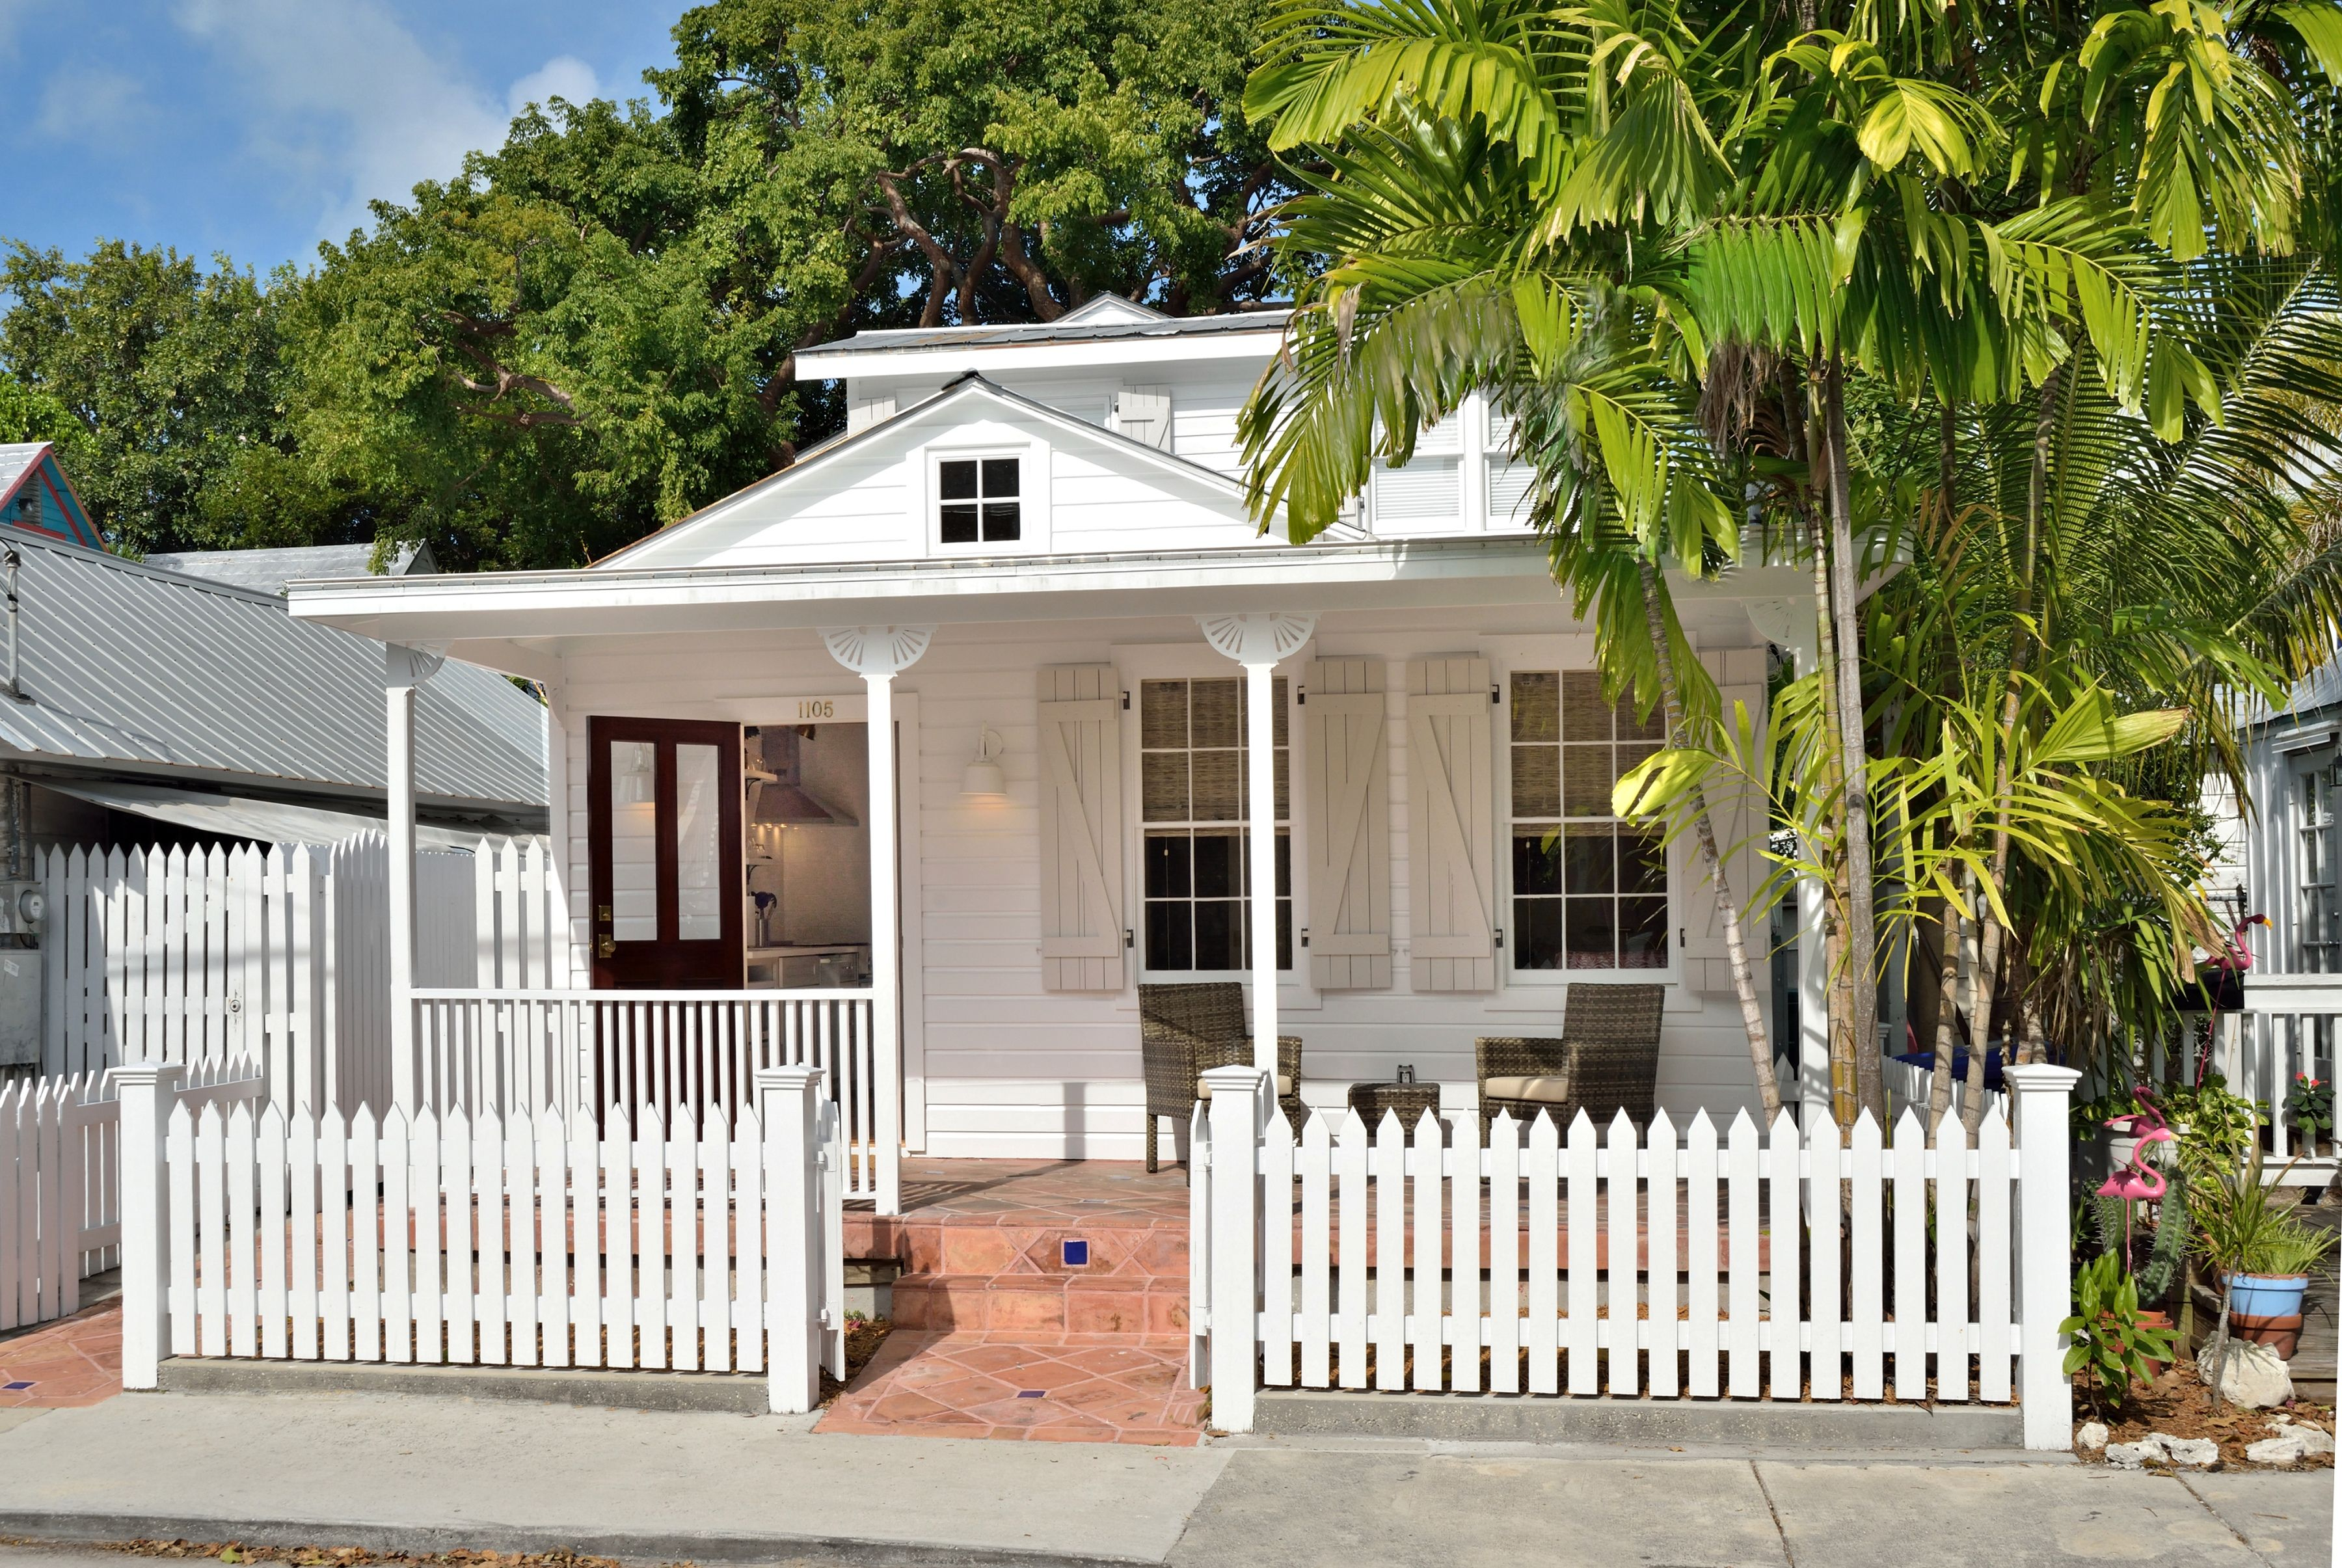 inn pacific and ca grove net cottages dominica cottage sea breeze hotelroomsearch